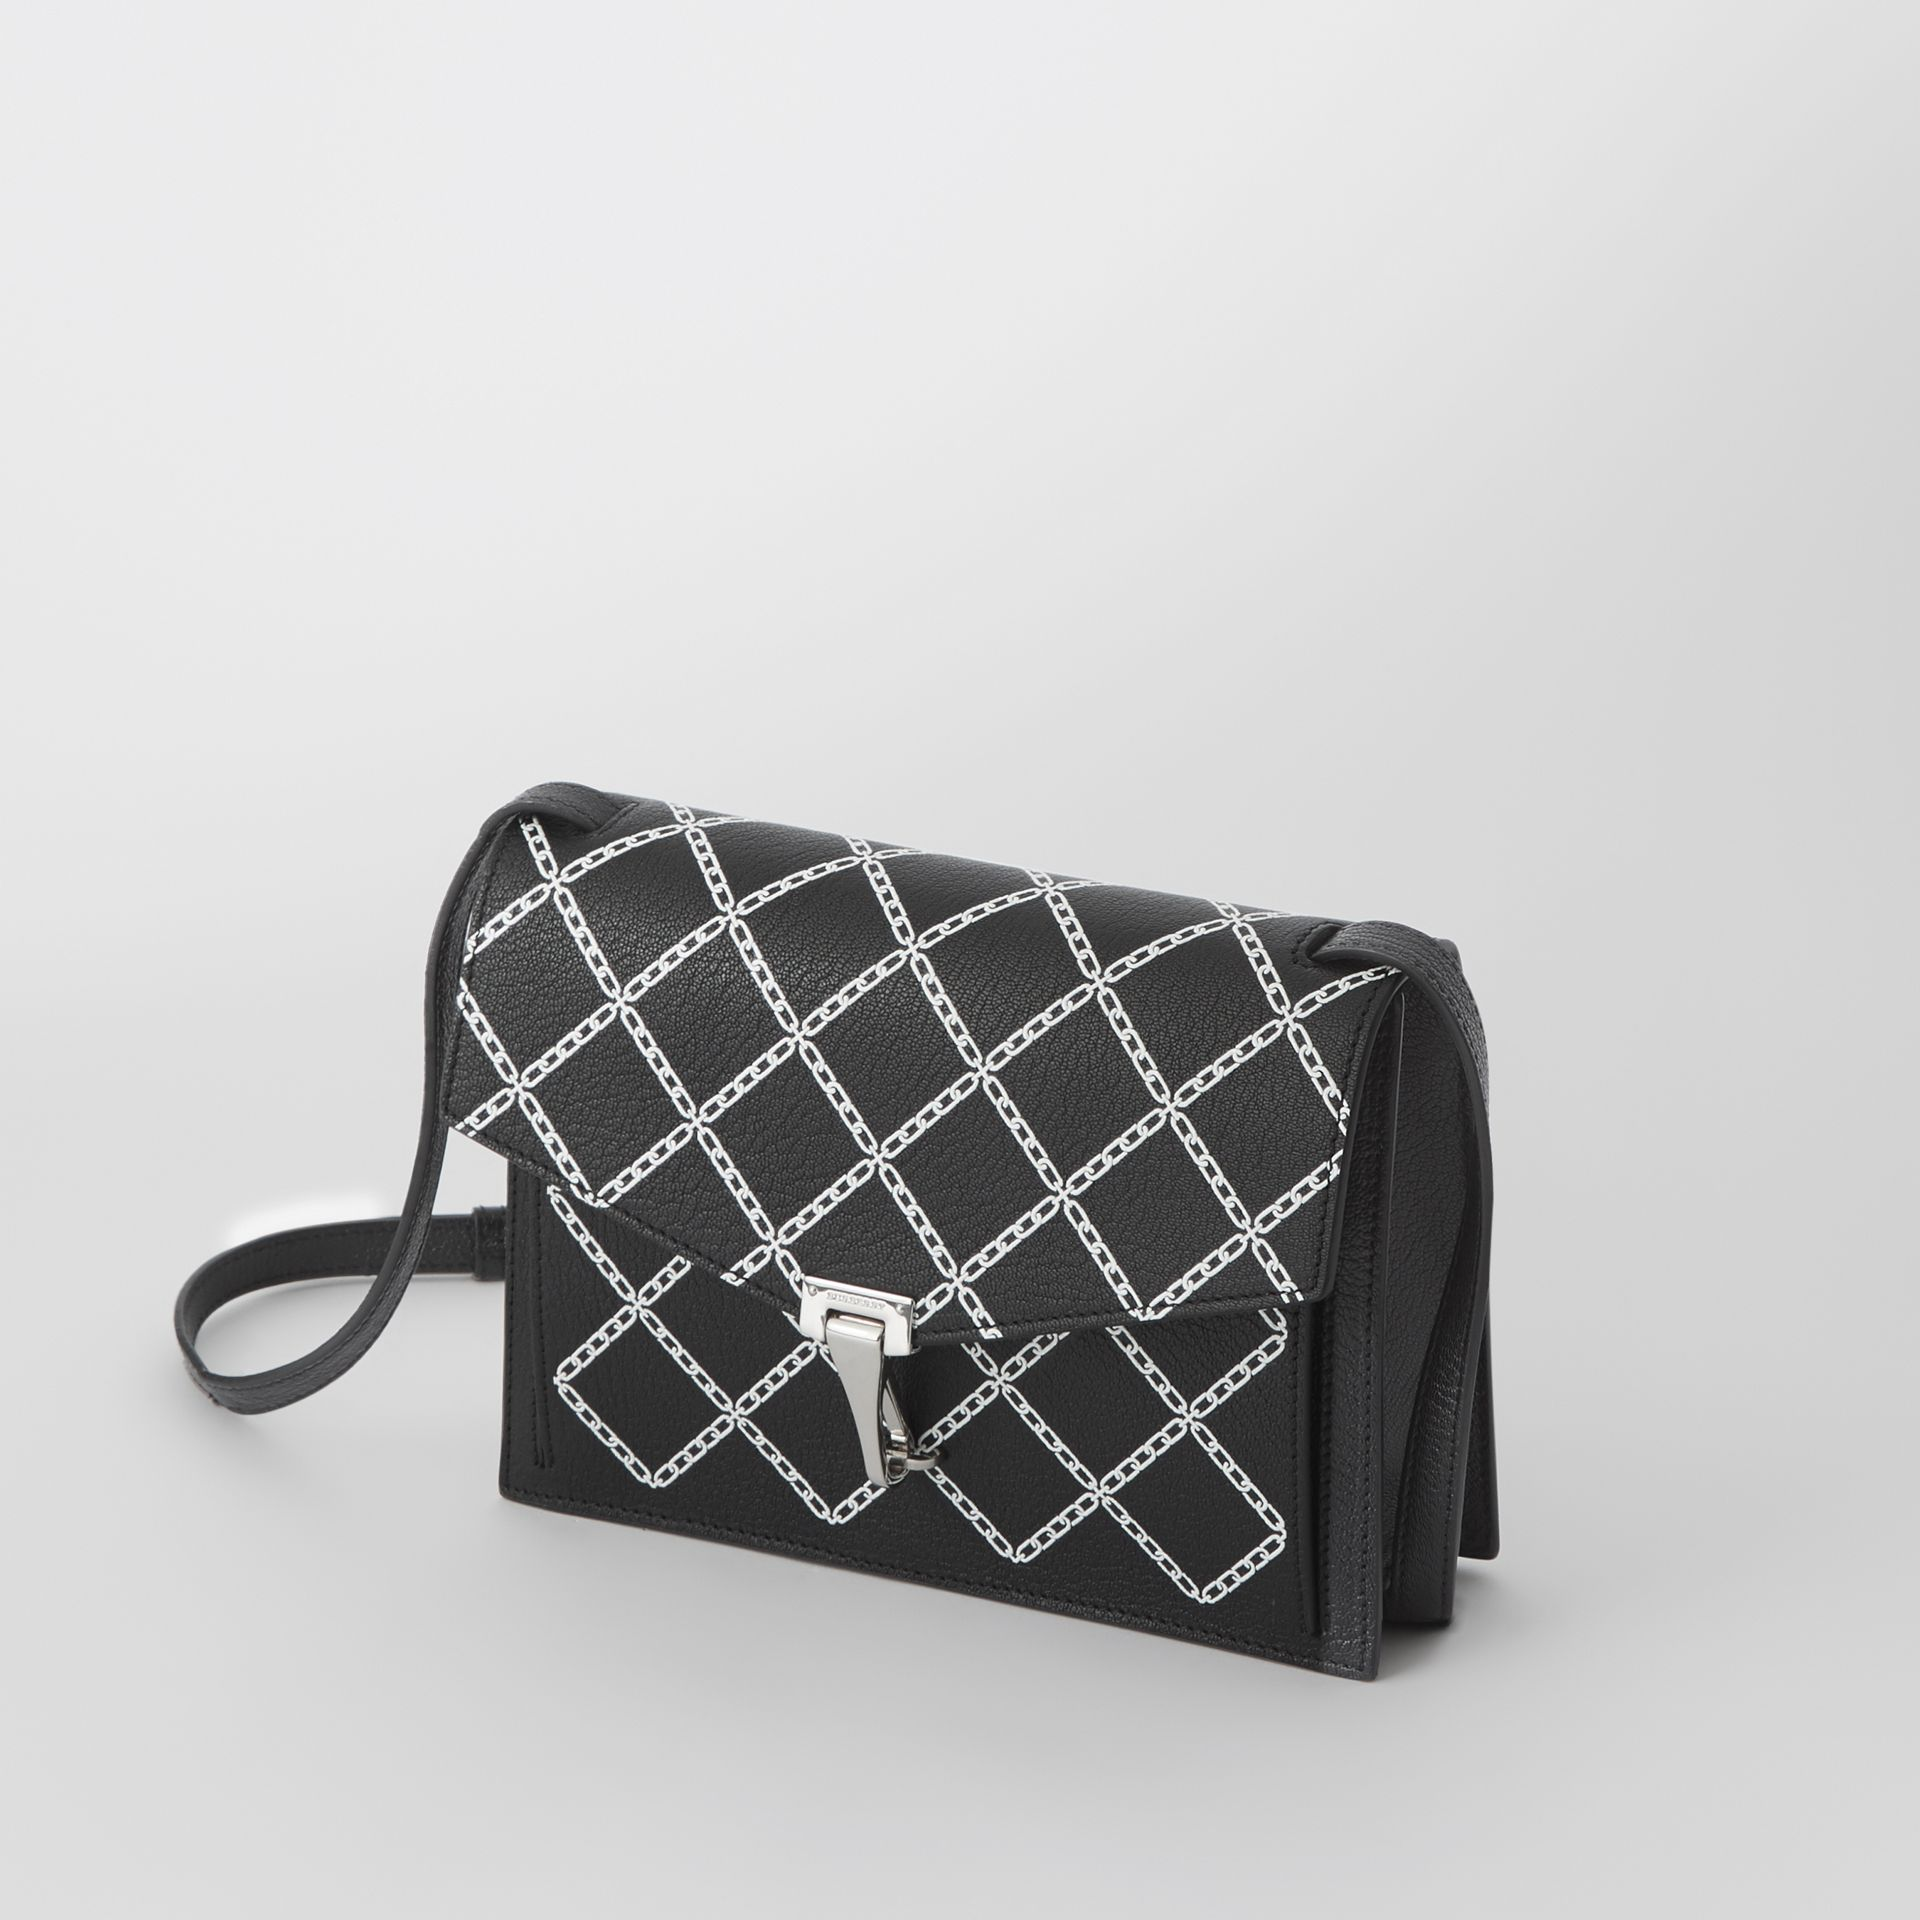 Small Link Print Leather Crossbody Bag in Black - Women | Burberry - gallery image 4